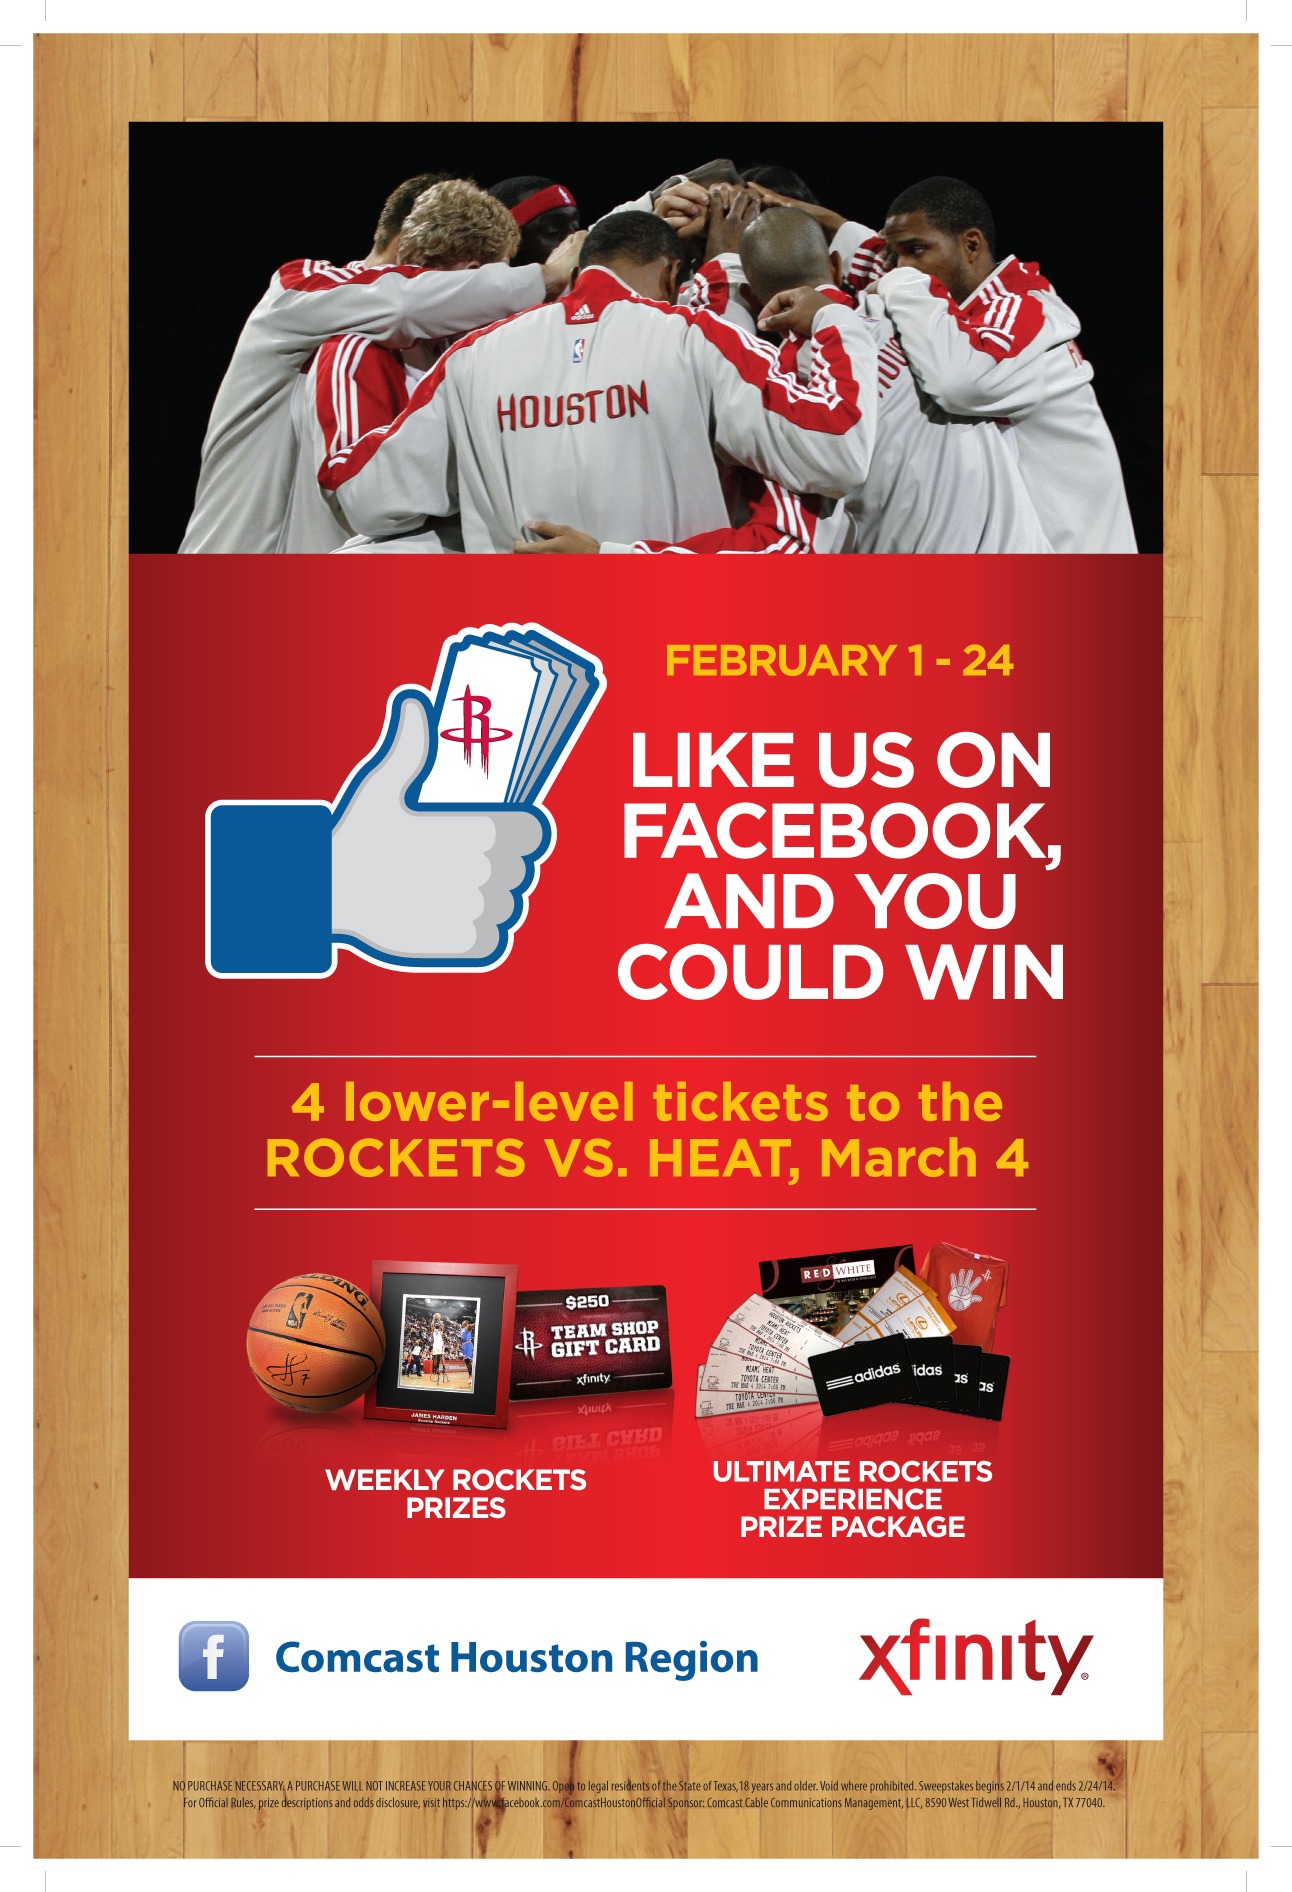 Basketball Fans Win with Comcast and the Houston Rockets | Business Wire